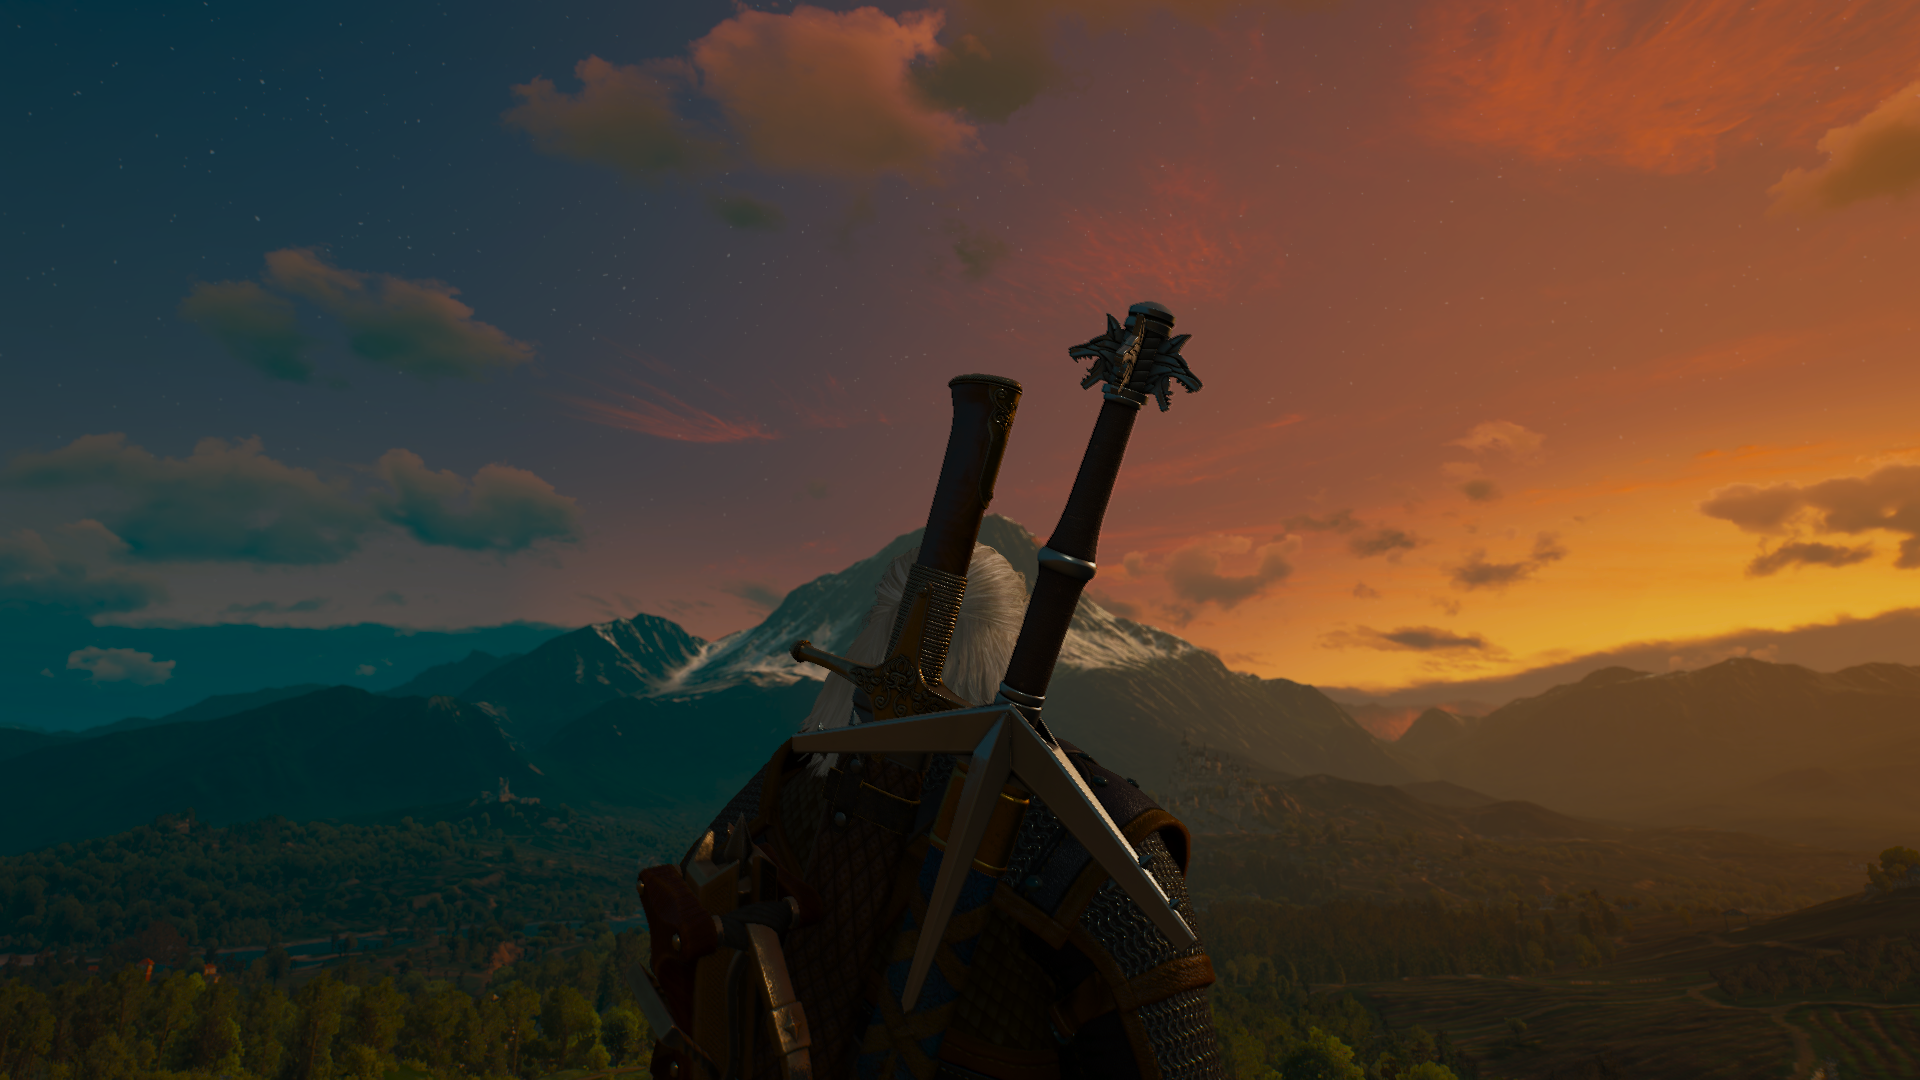 The Witcher 3 06.01.2019 00_19_02.png - Witcher 3: Wild Hunt, the